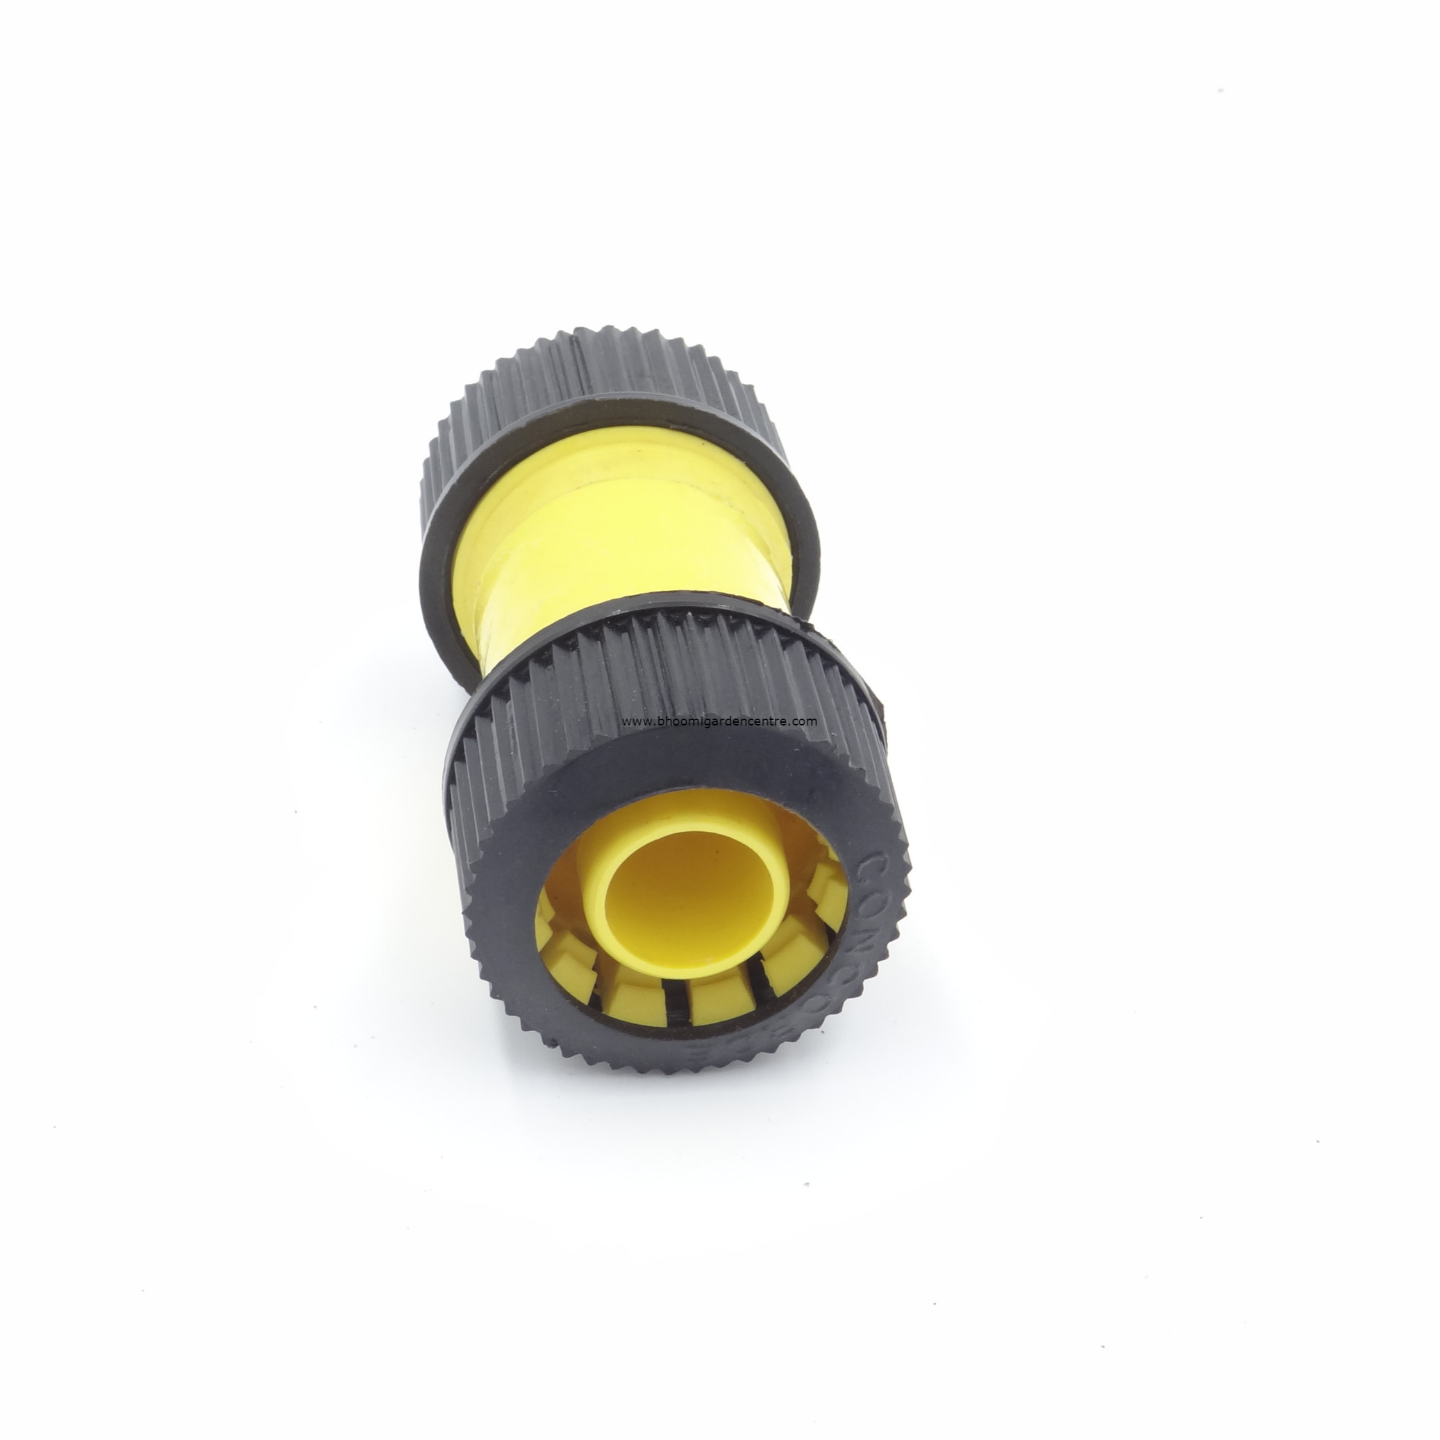 34 to 34 - Tap to Hose connector